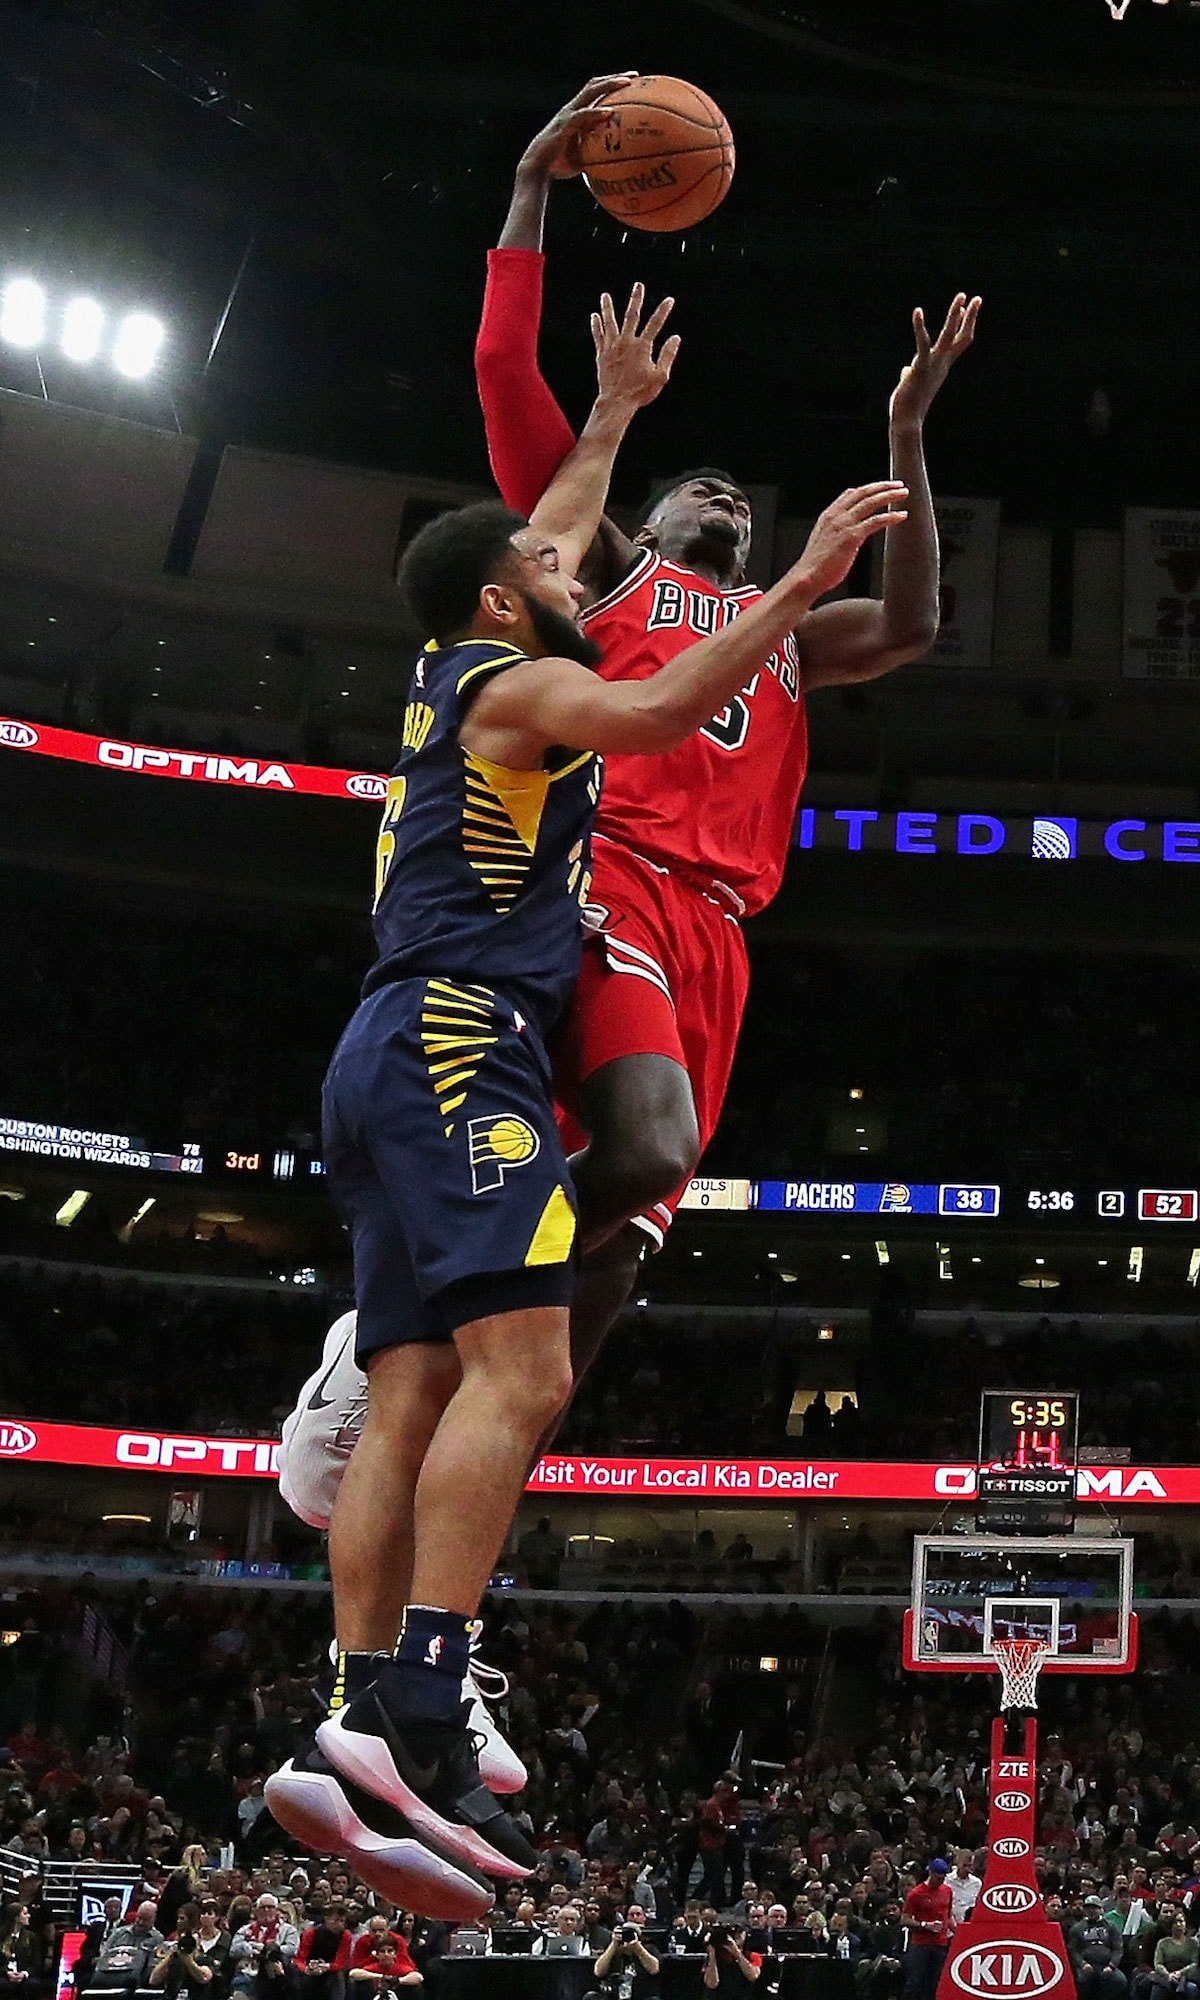 Bobby Portis #5 of the Chicago Bulls tries to get off a shot under pressure from Cory Joseph #6 of the Indiana Pacers